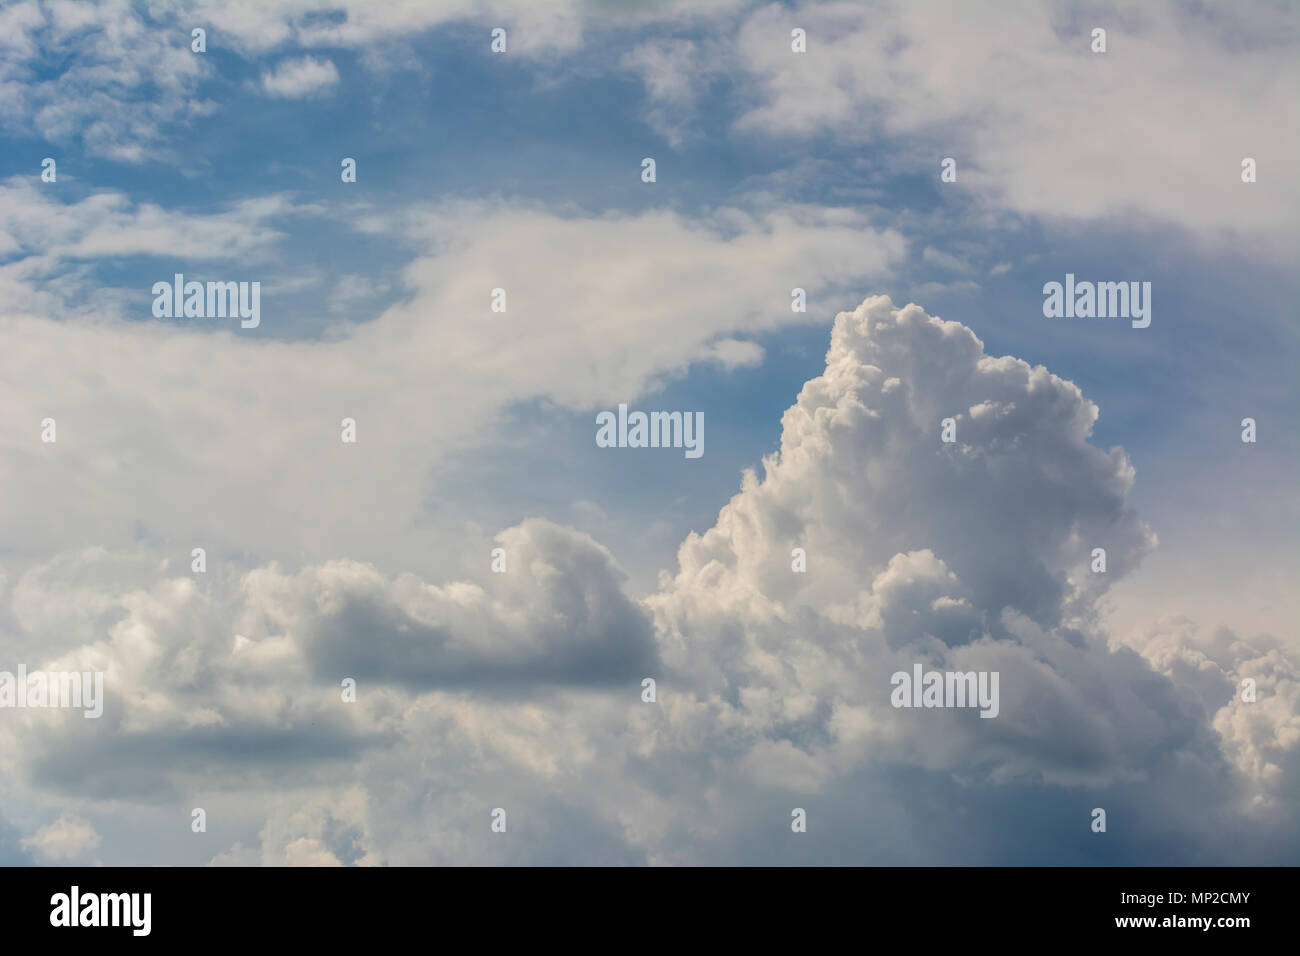 Clouds background cumulonimbus cloud formations before the storm - Stock Image